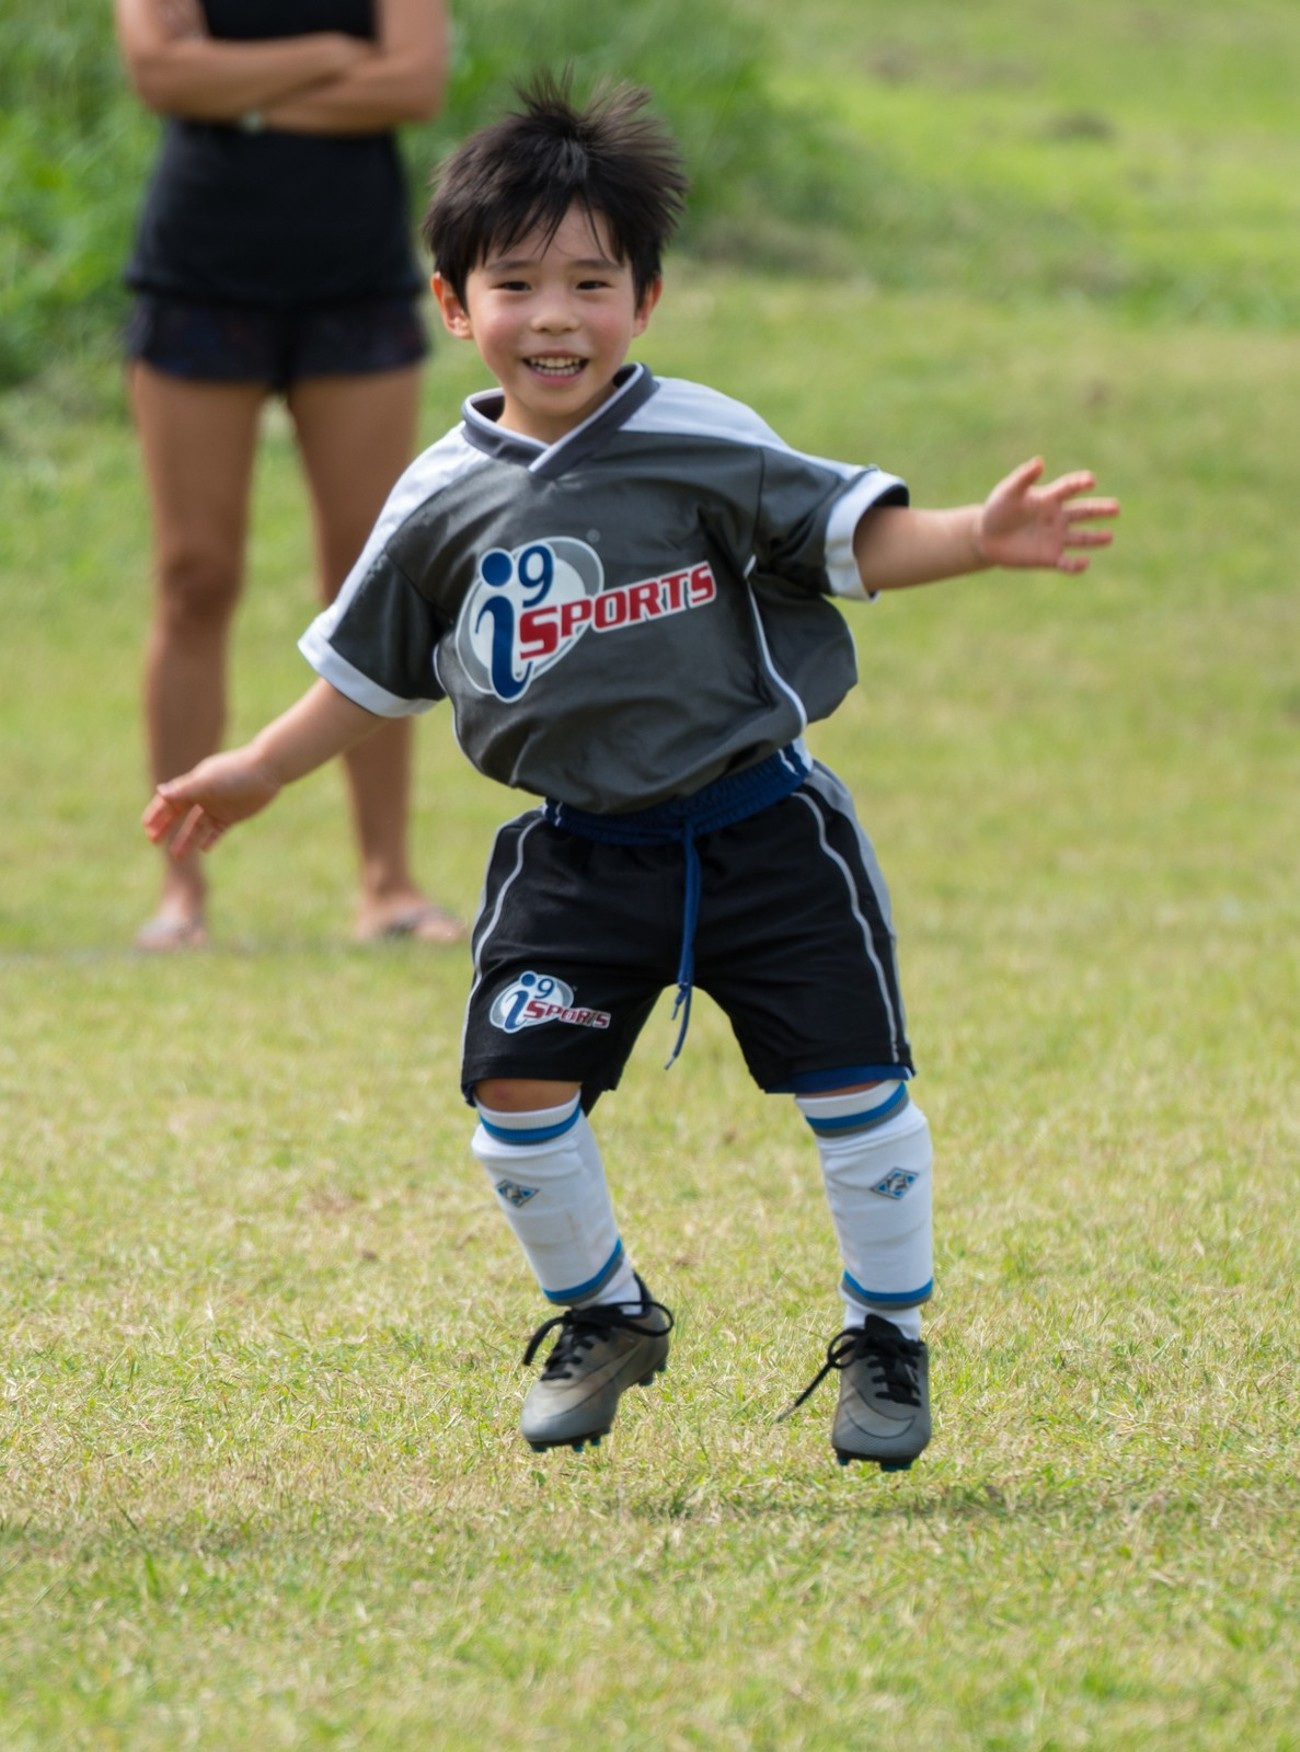 4 year old Jonah scores his first soccer goal.  Indeed a beautiful game!